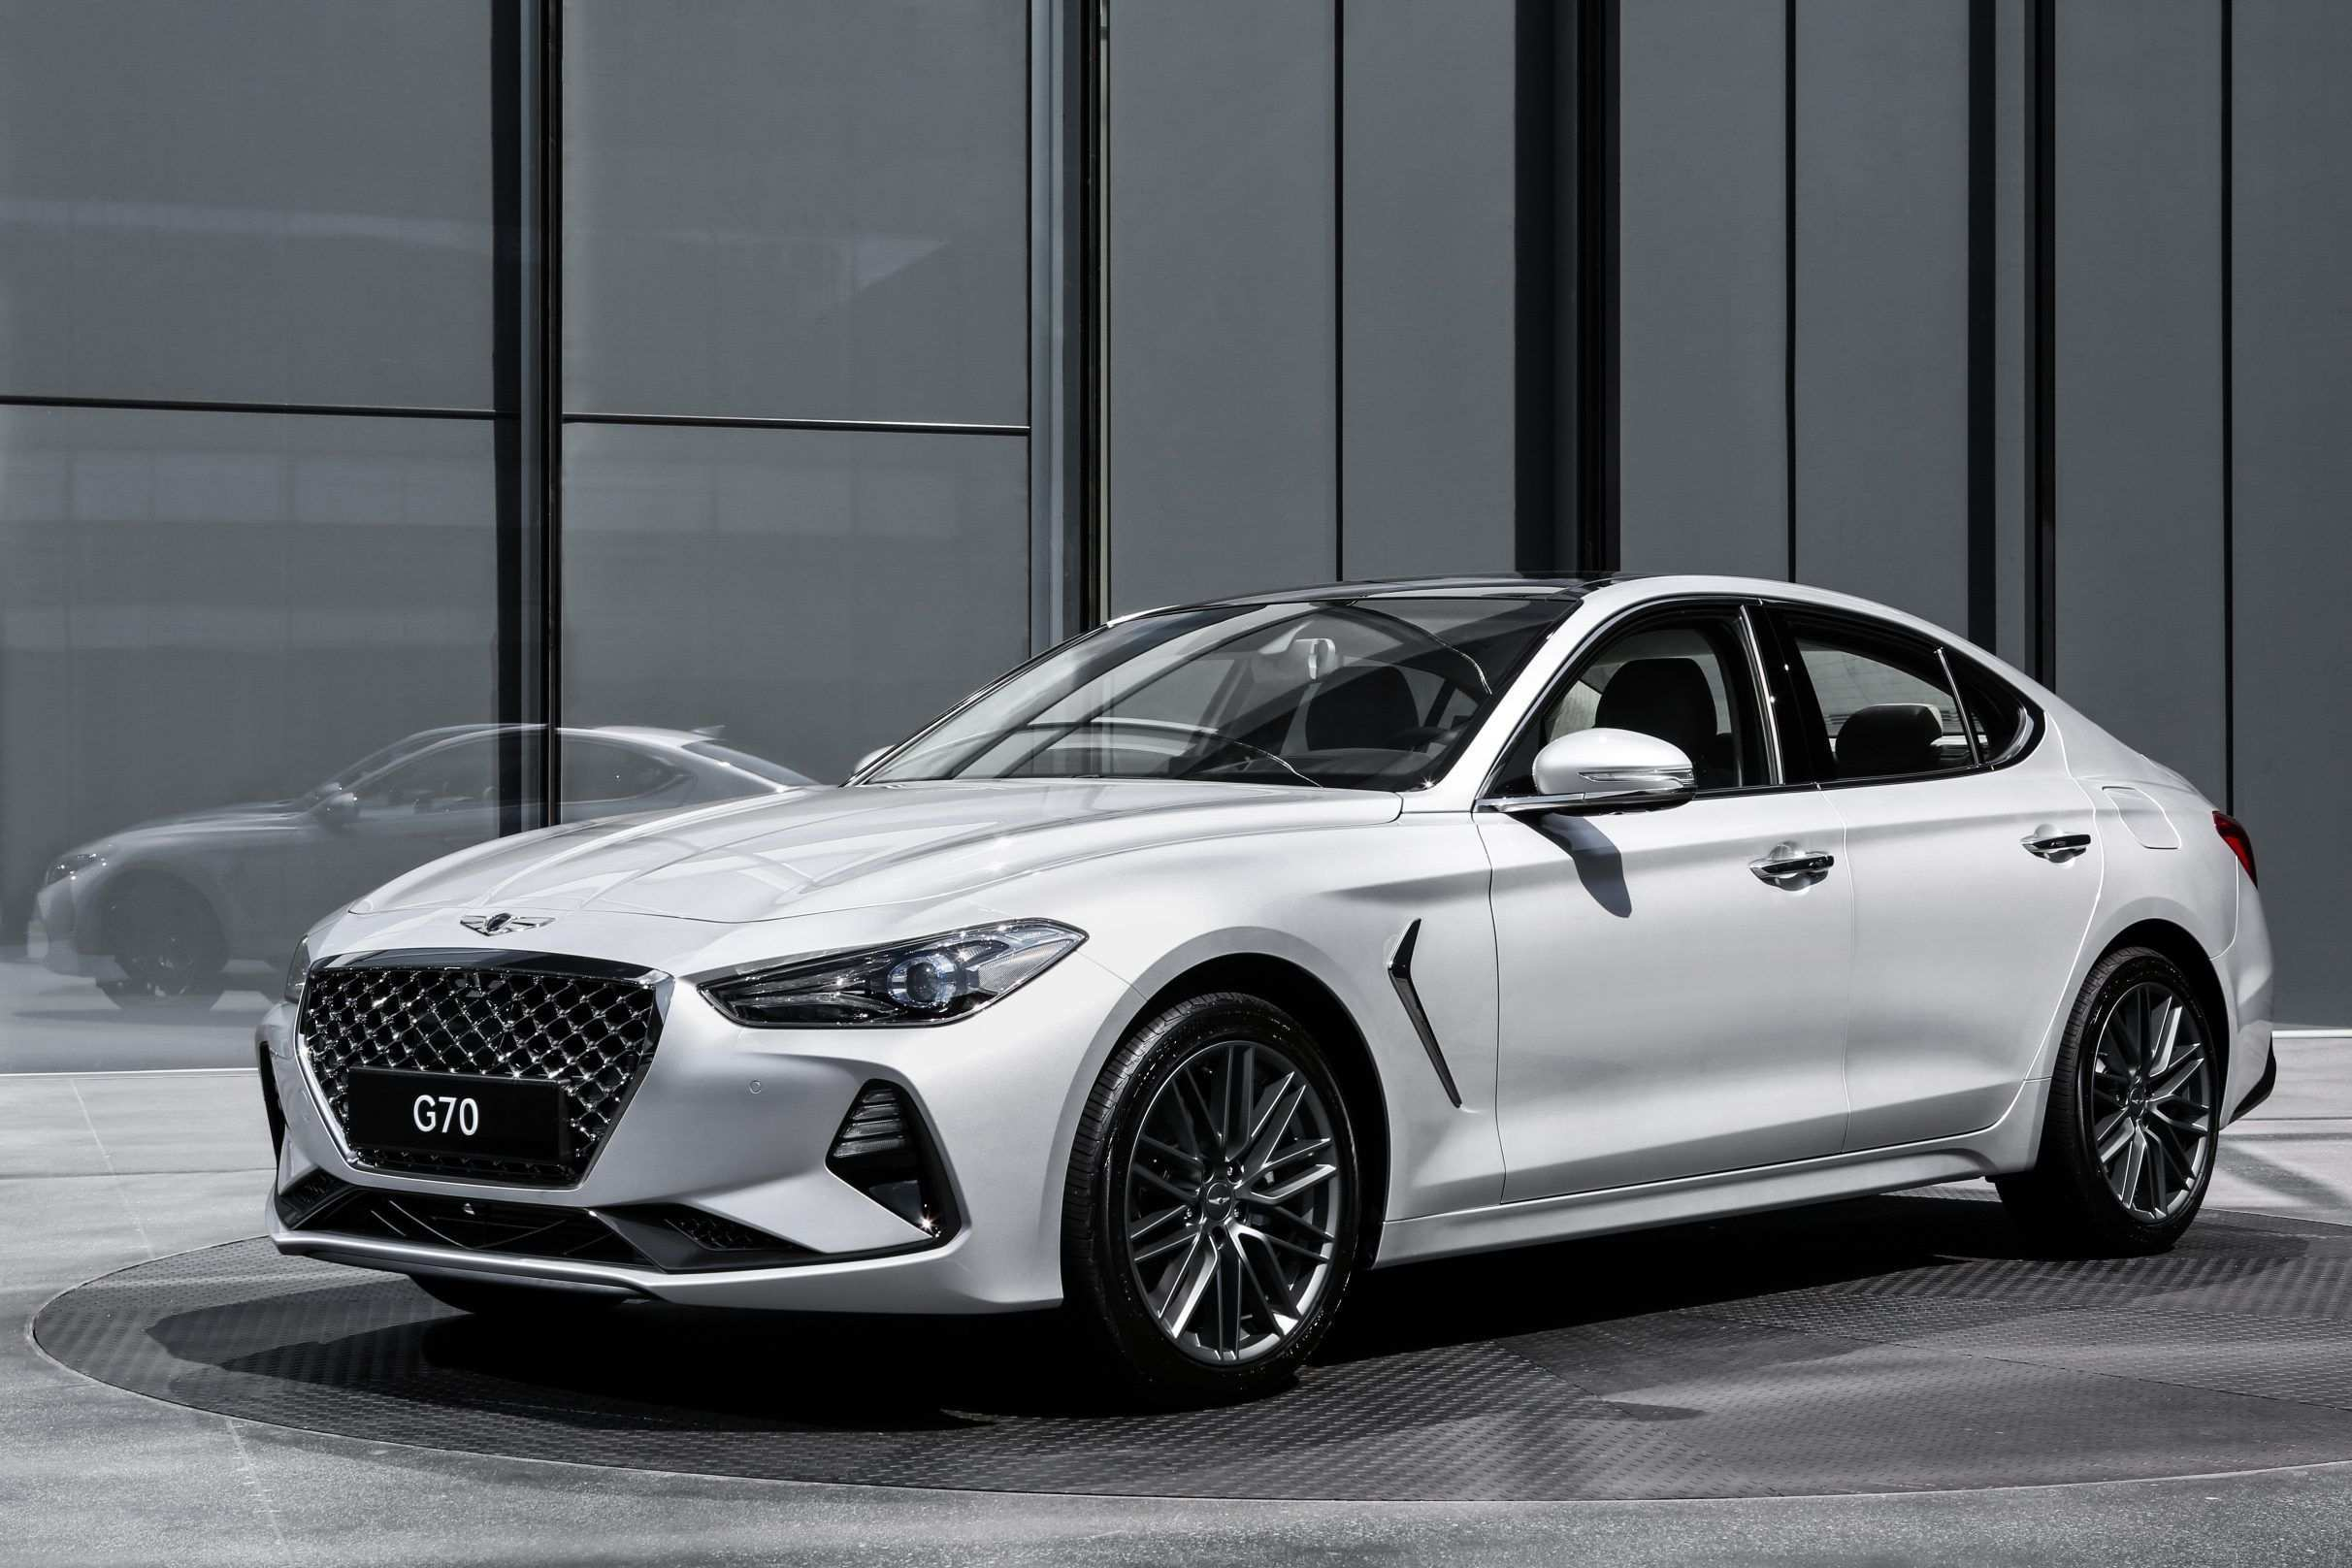 48 Best Review 2019 Infiniti G70 Pictures with 2019 Infiniti G70